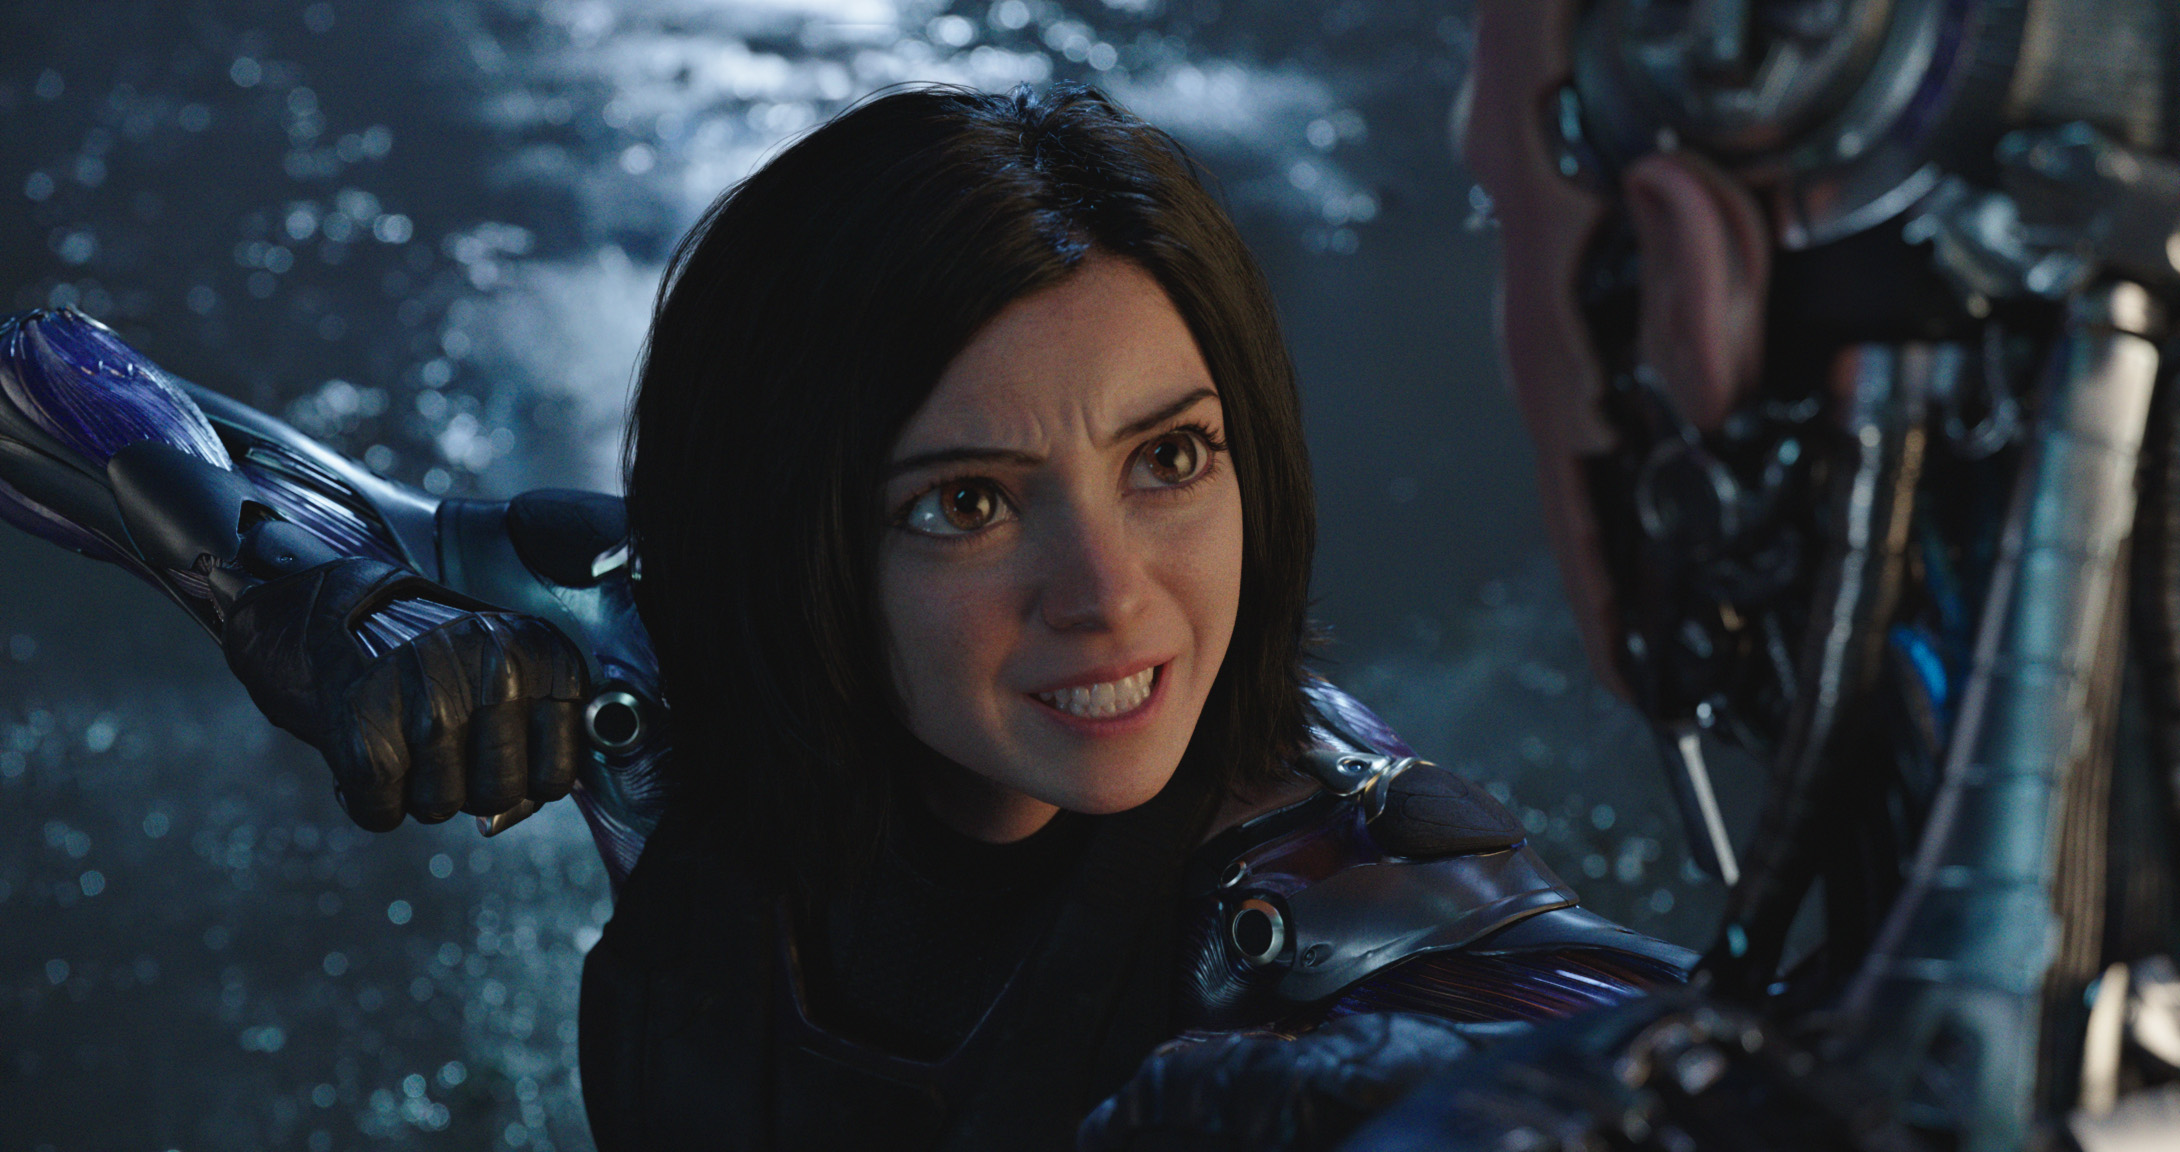 REVIEW: Robert Rodriguez Envisions a Multicultural & Multilingual Cyberpunk Future in 'Alita: Battle Angel'